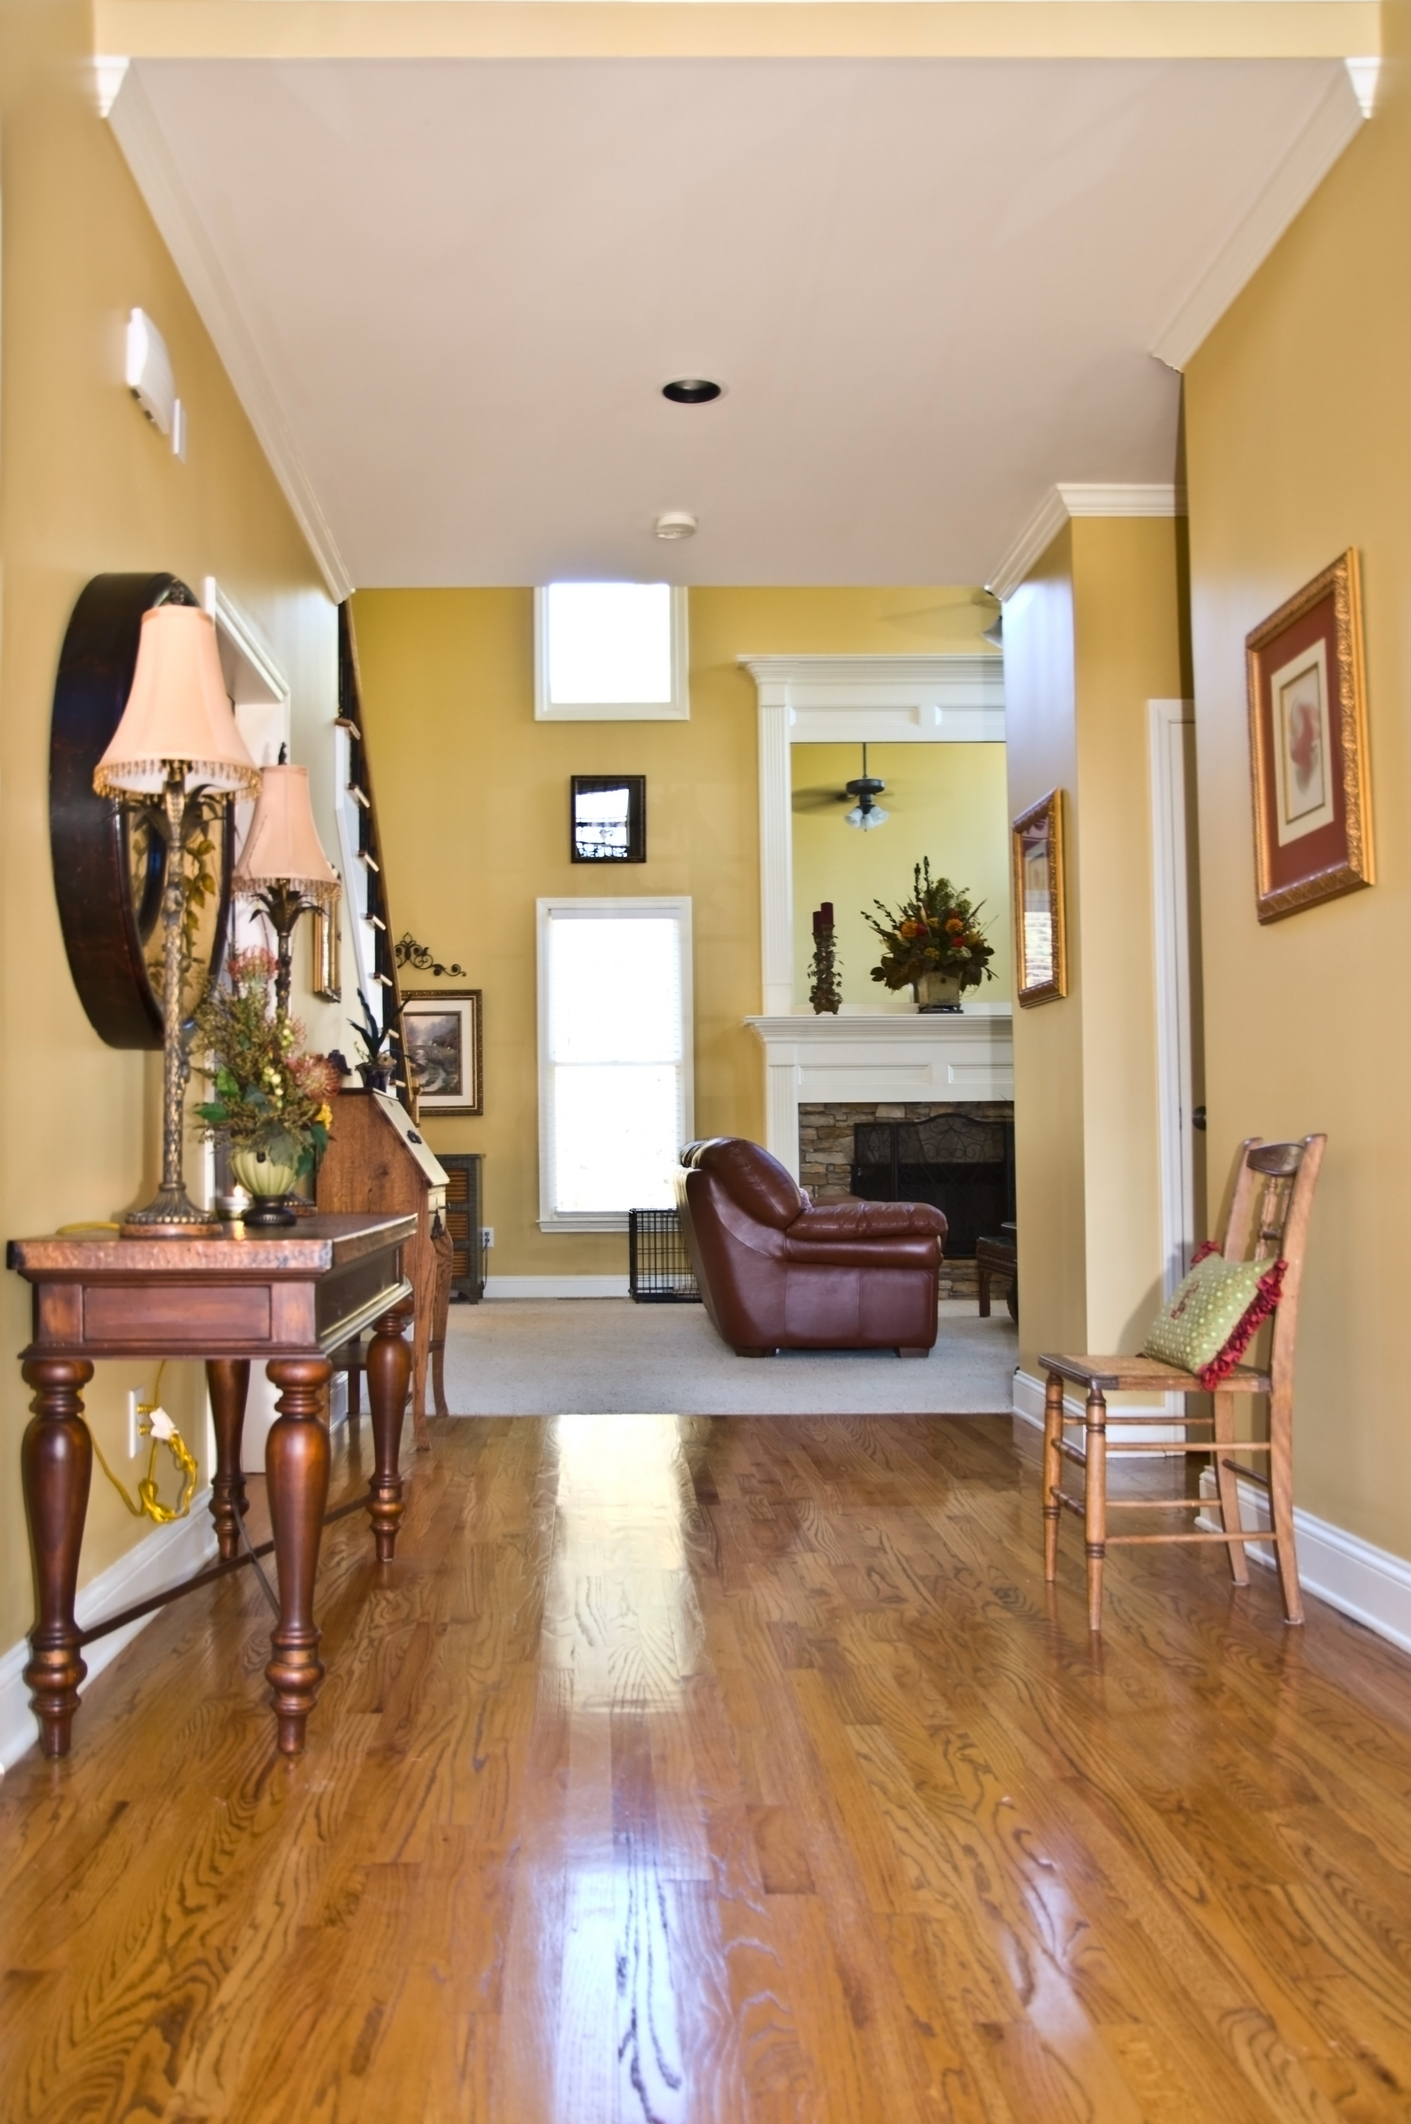 Best Colour Combination For Home Interior The 1 Rule To Consider When Choosing Your New Colour